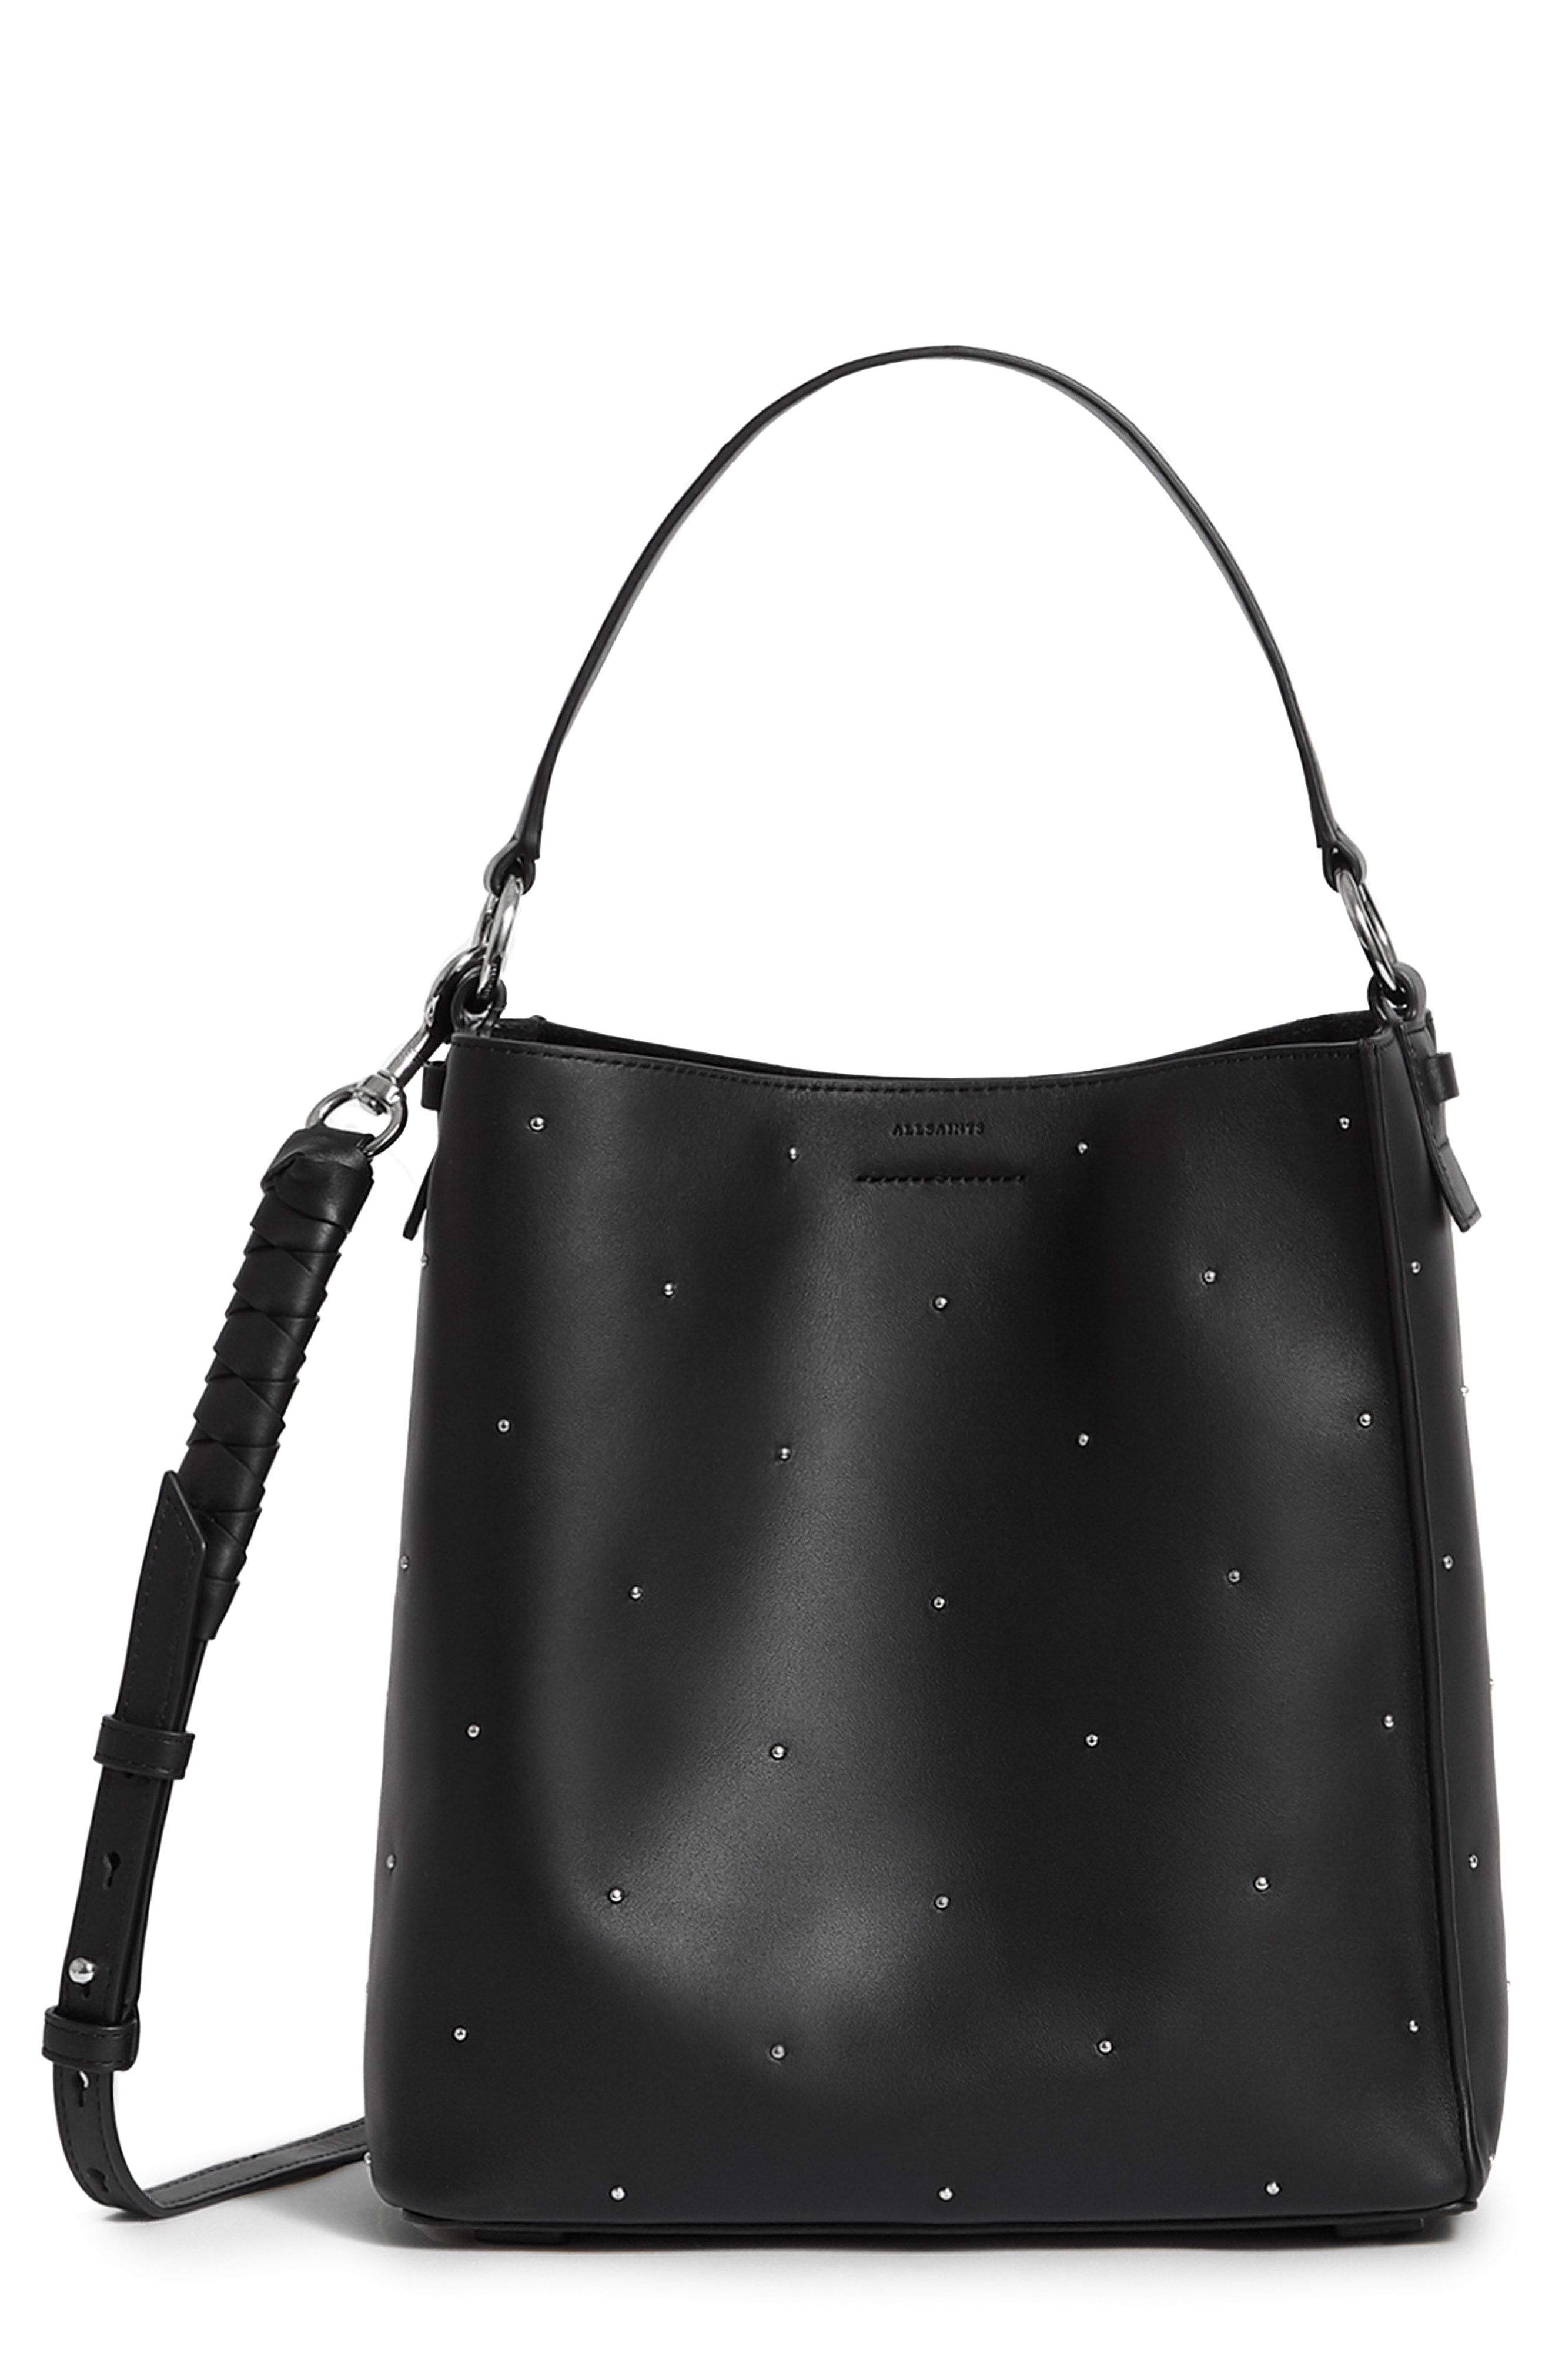 Allsaints Small Kathi Studded North South Leather Tote In Black ... 4ab24b3bf9a18